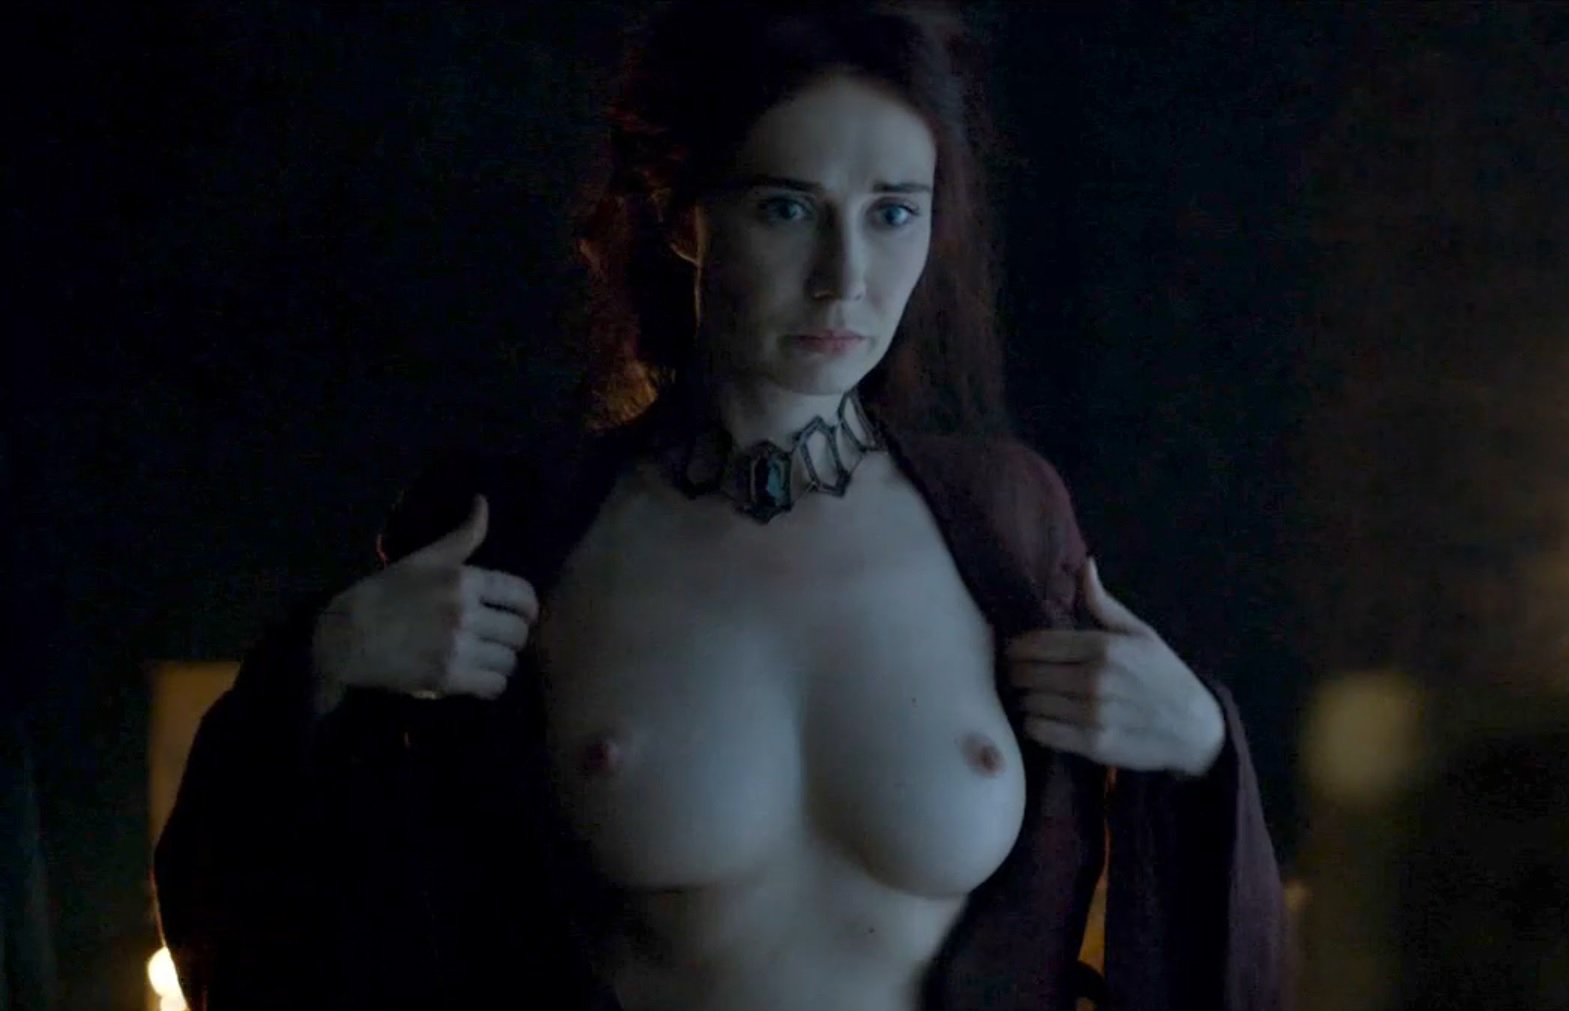 Carice-game-of-thrones